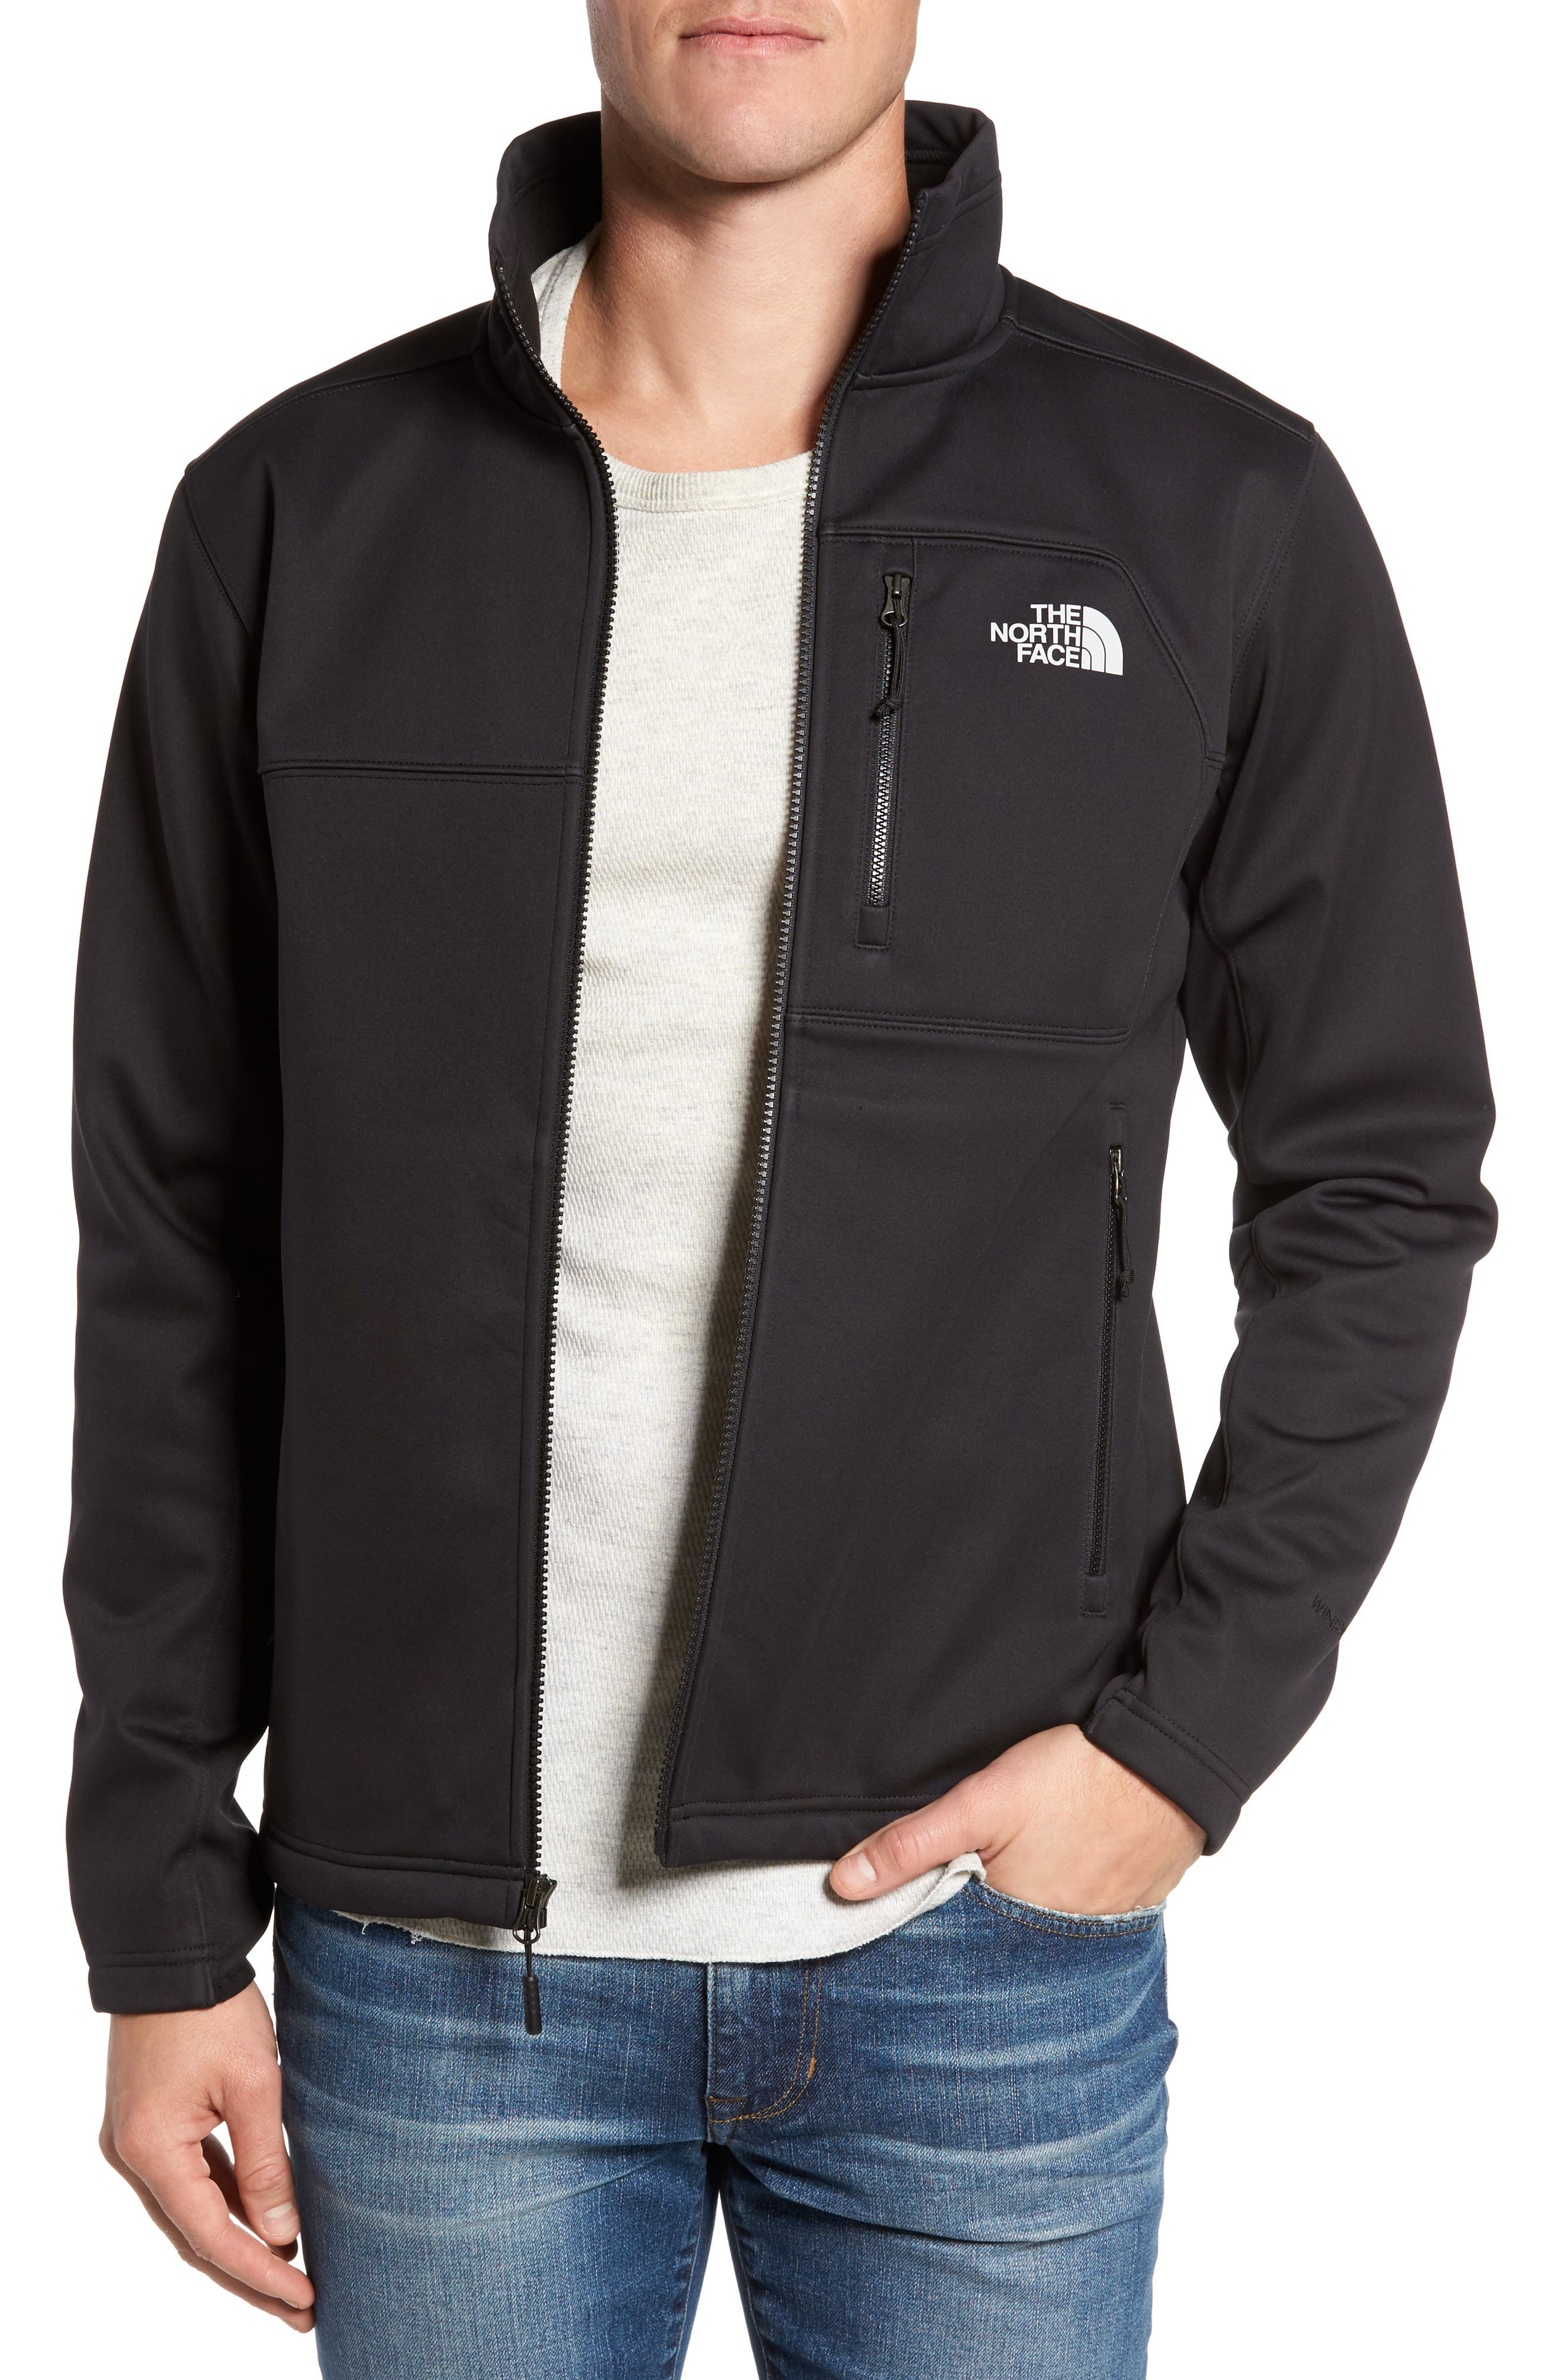 Apex Risor Jacket,                         Main,                         color, Black/ Black